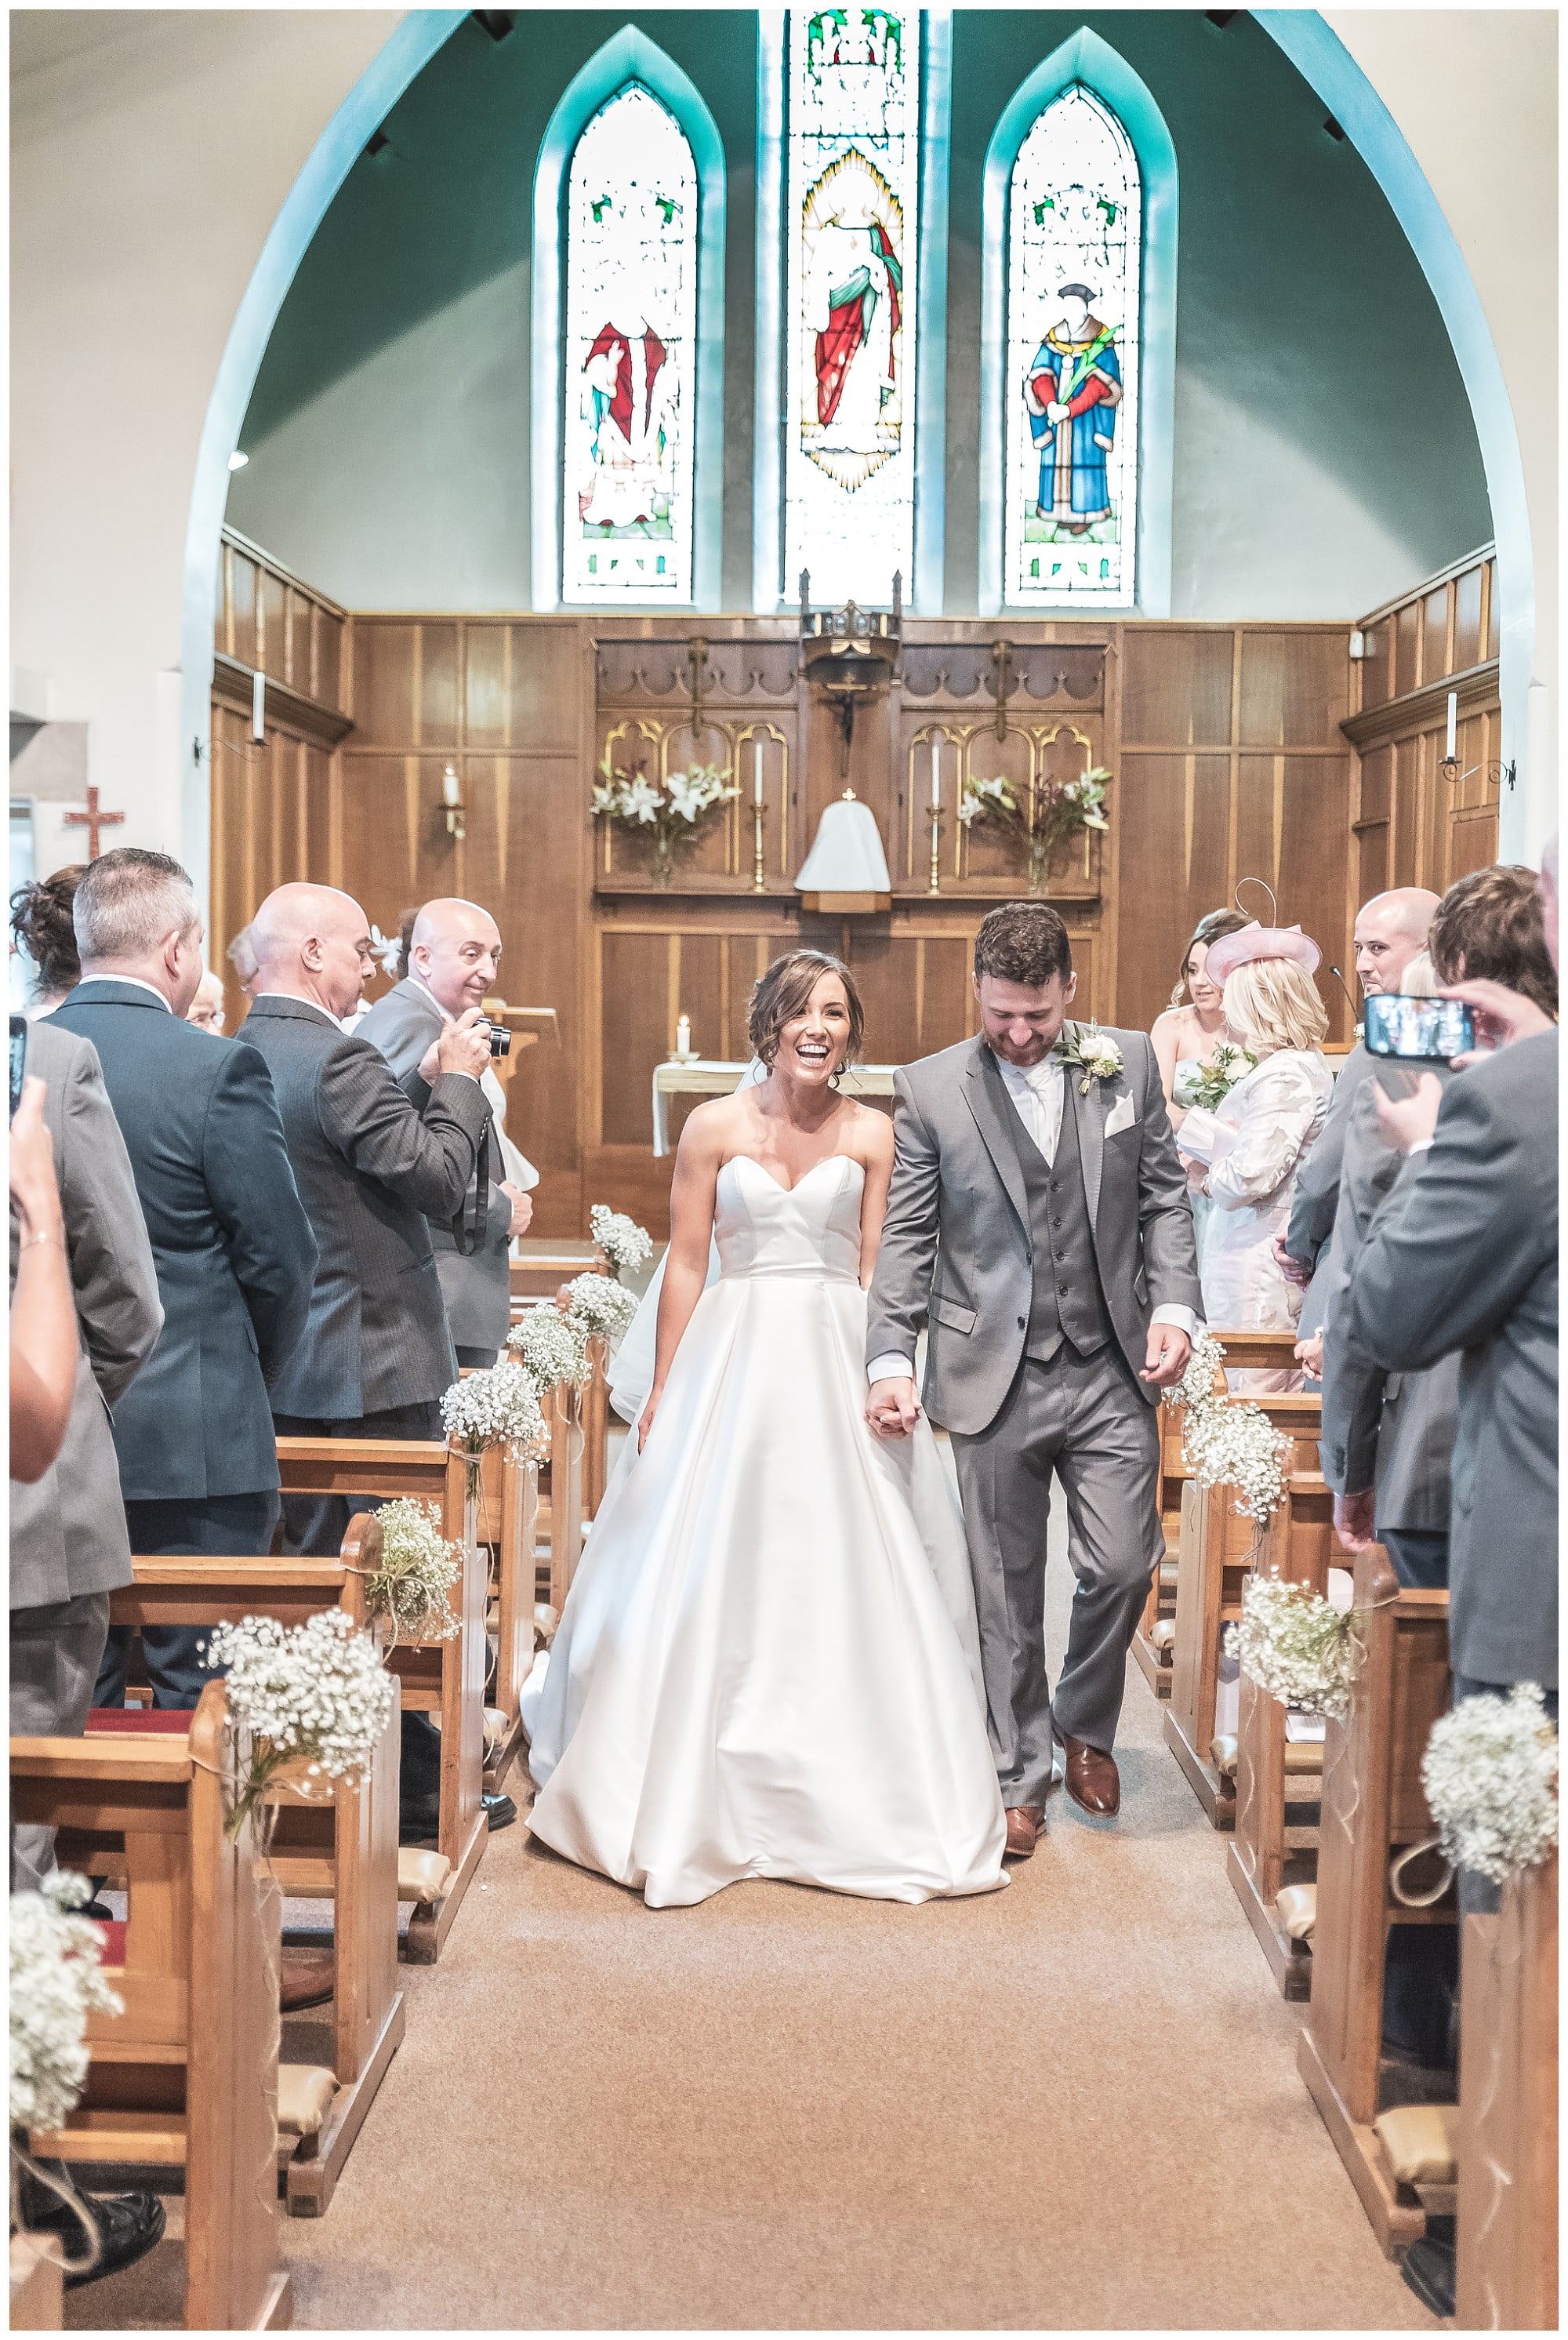 Bride and groom smiling walking down the church aisle after just getting married at the Holy Family Church Slaithwaite